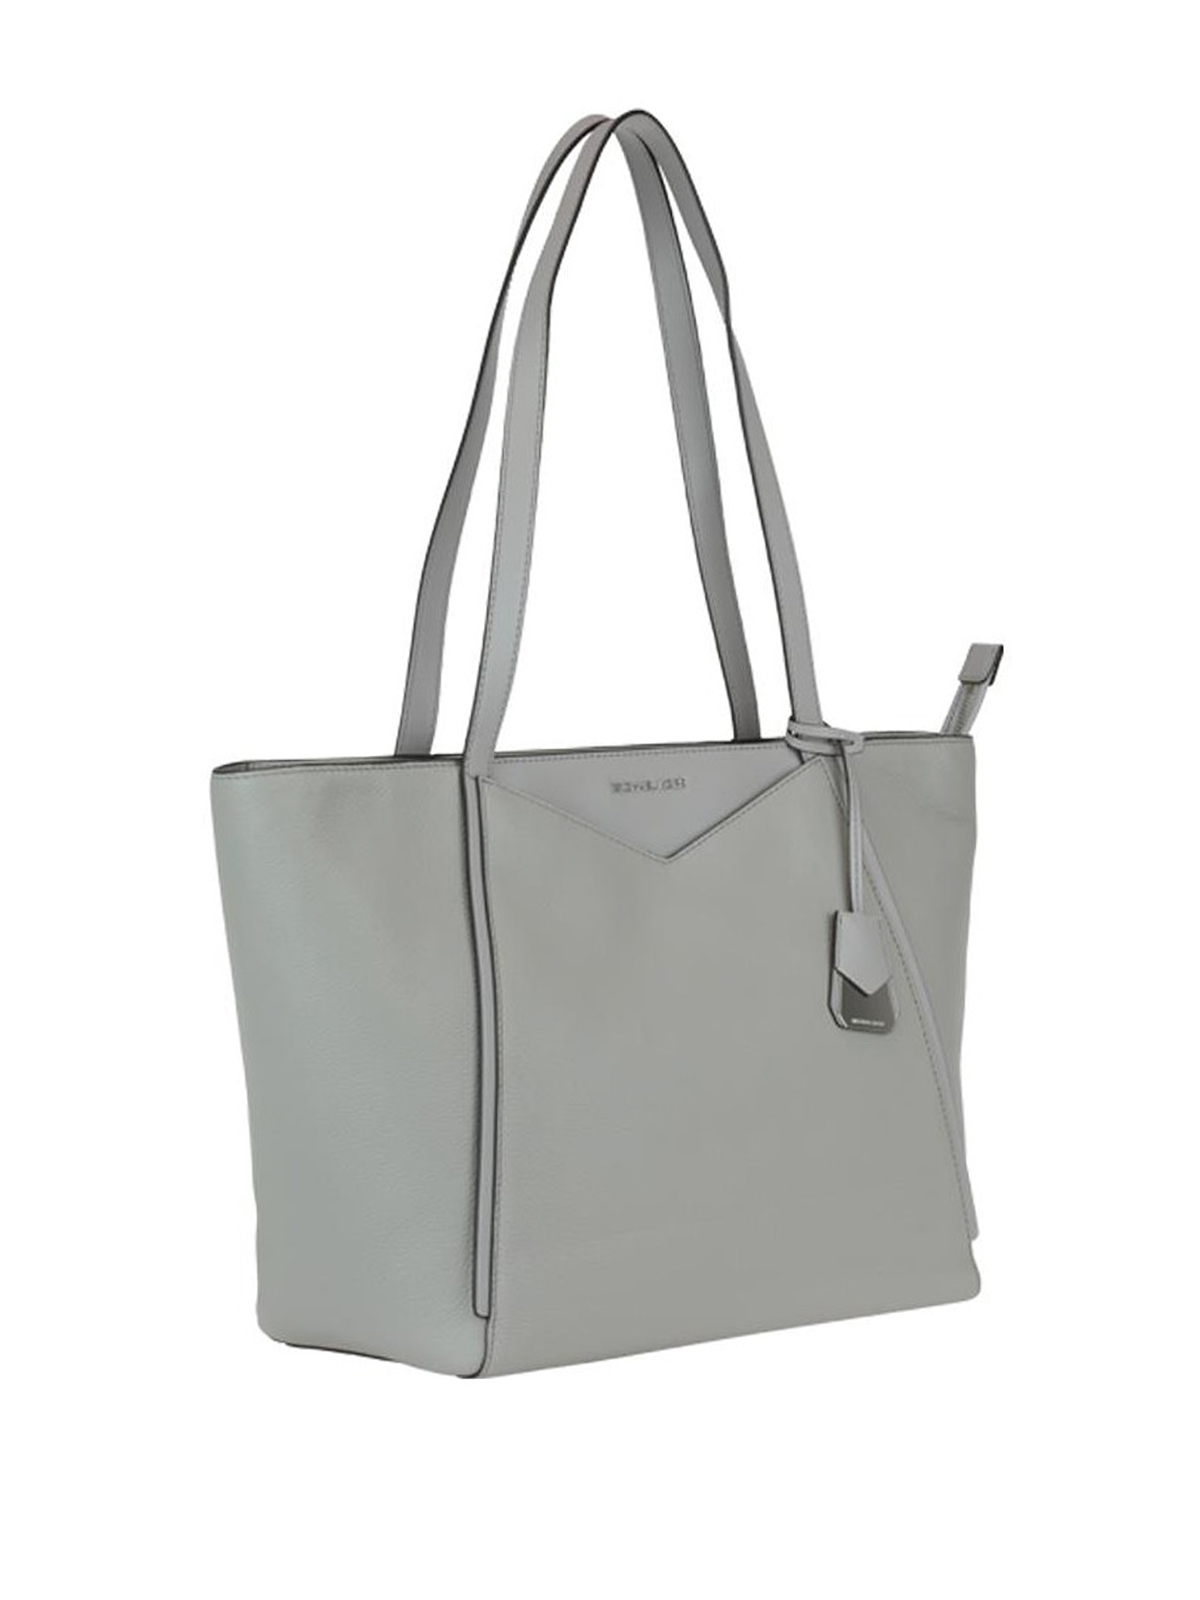 41c768f825c9 MICHAEL KORS: totes bags online - Whitney pearl grey large tote